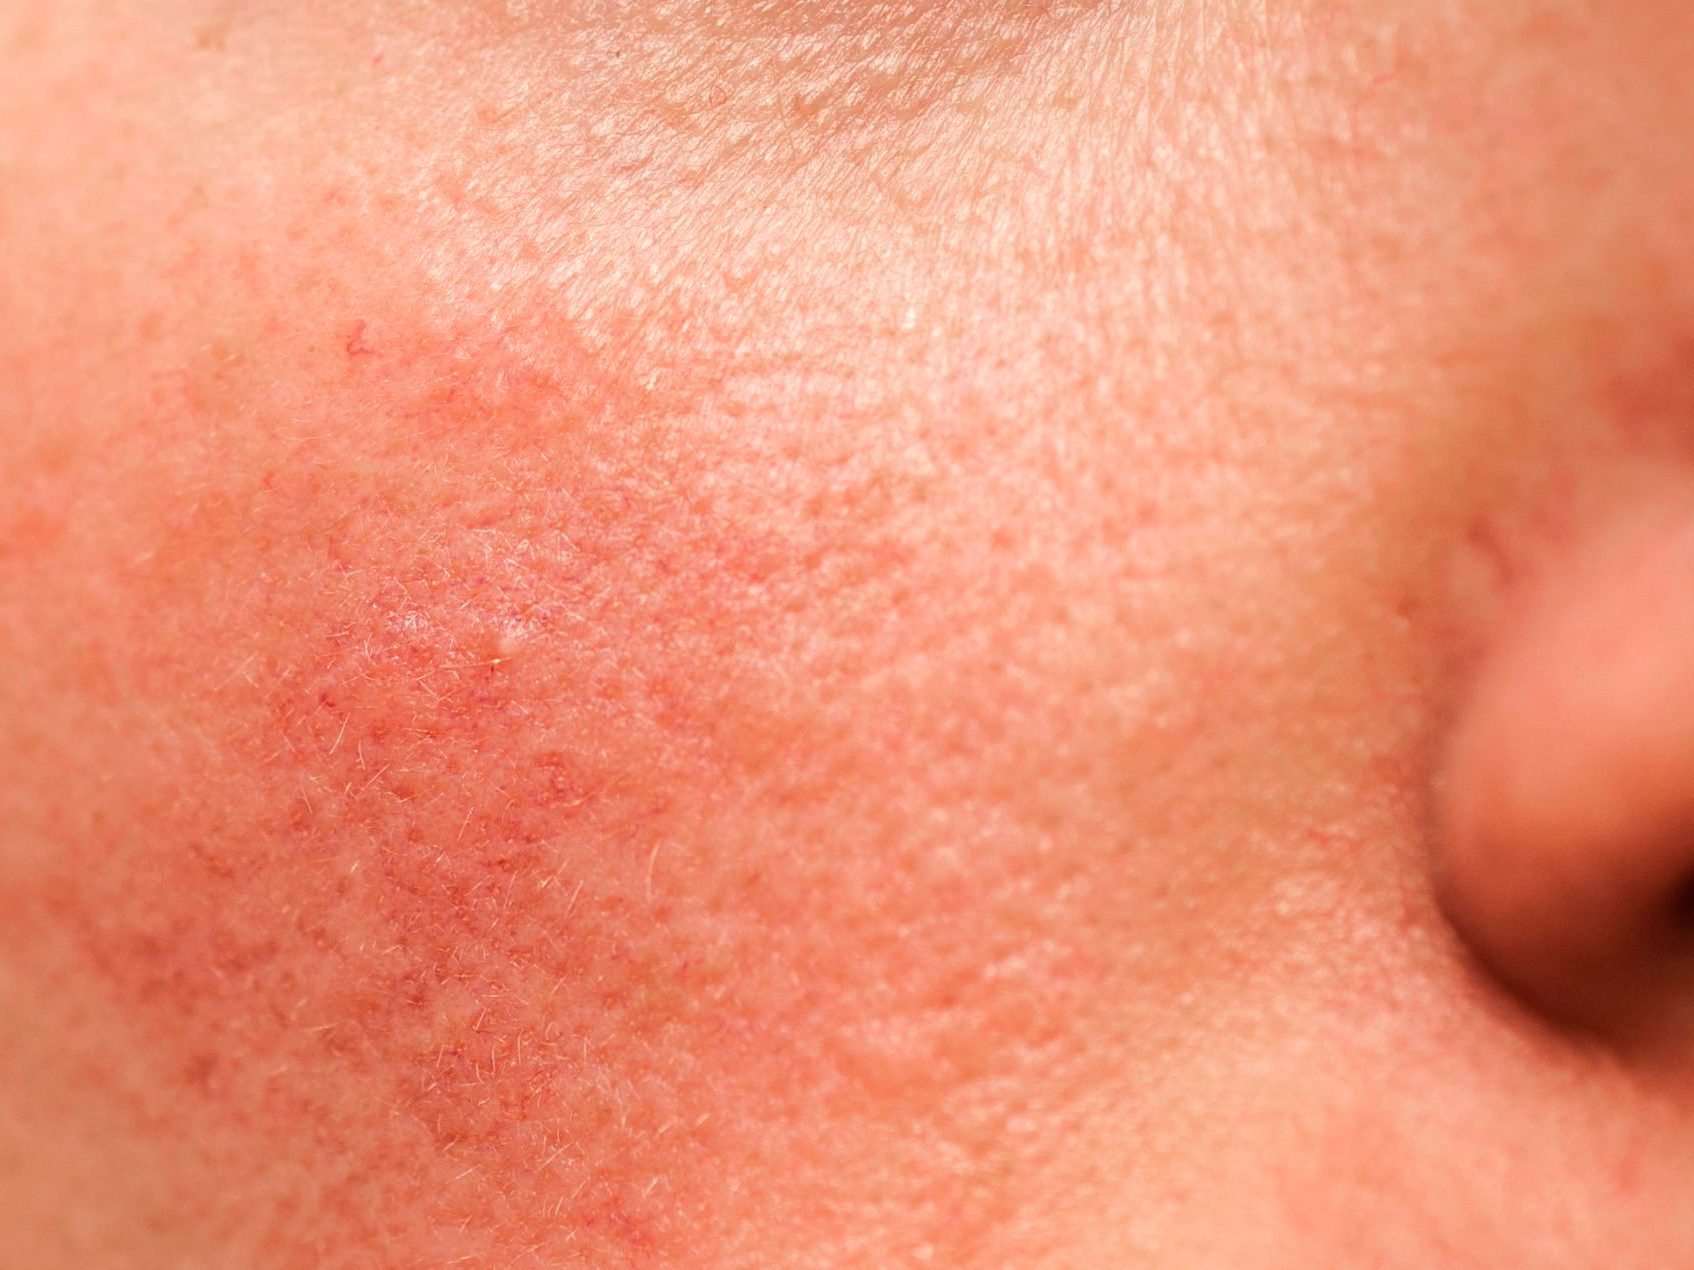 How to Tell the Difference Between Psoriasis, Rosacea, and Eczema - rosacea on face